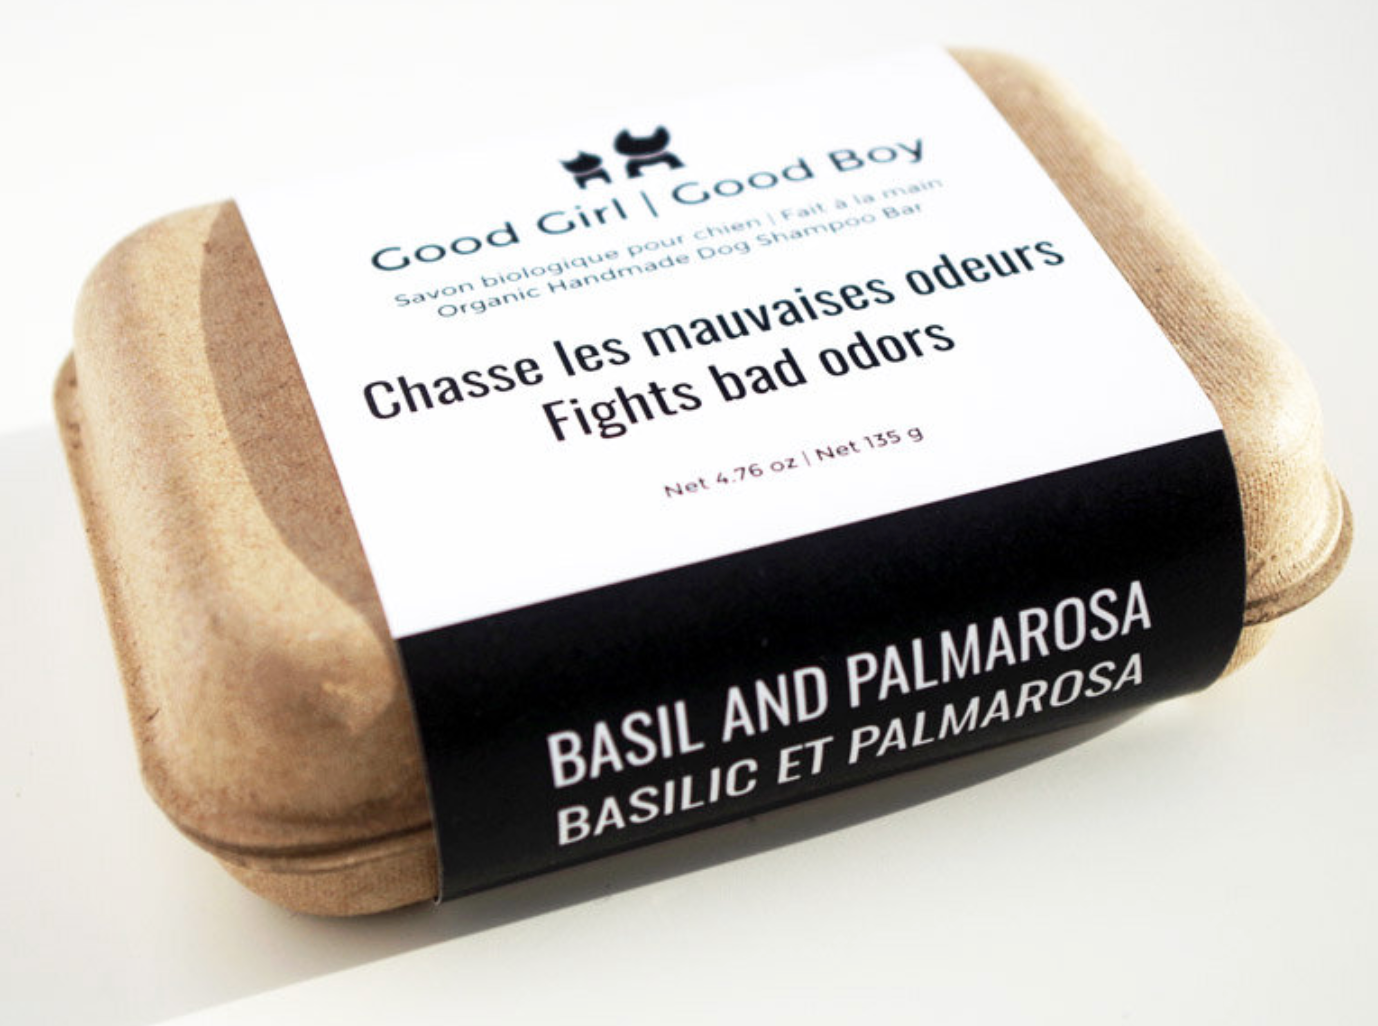 100% Natural and Organic Basil and Palmarosa Soap with Shea Butter to fight bad odors. It's antibacterial, antiviral and antifungal. Conditioning and cleansing without drying your dog's sensitive skin. These soaps are biodegradable, certified vegan and cruelty-Free made with organic ingredients.